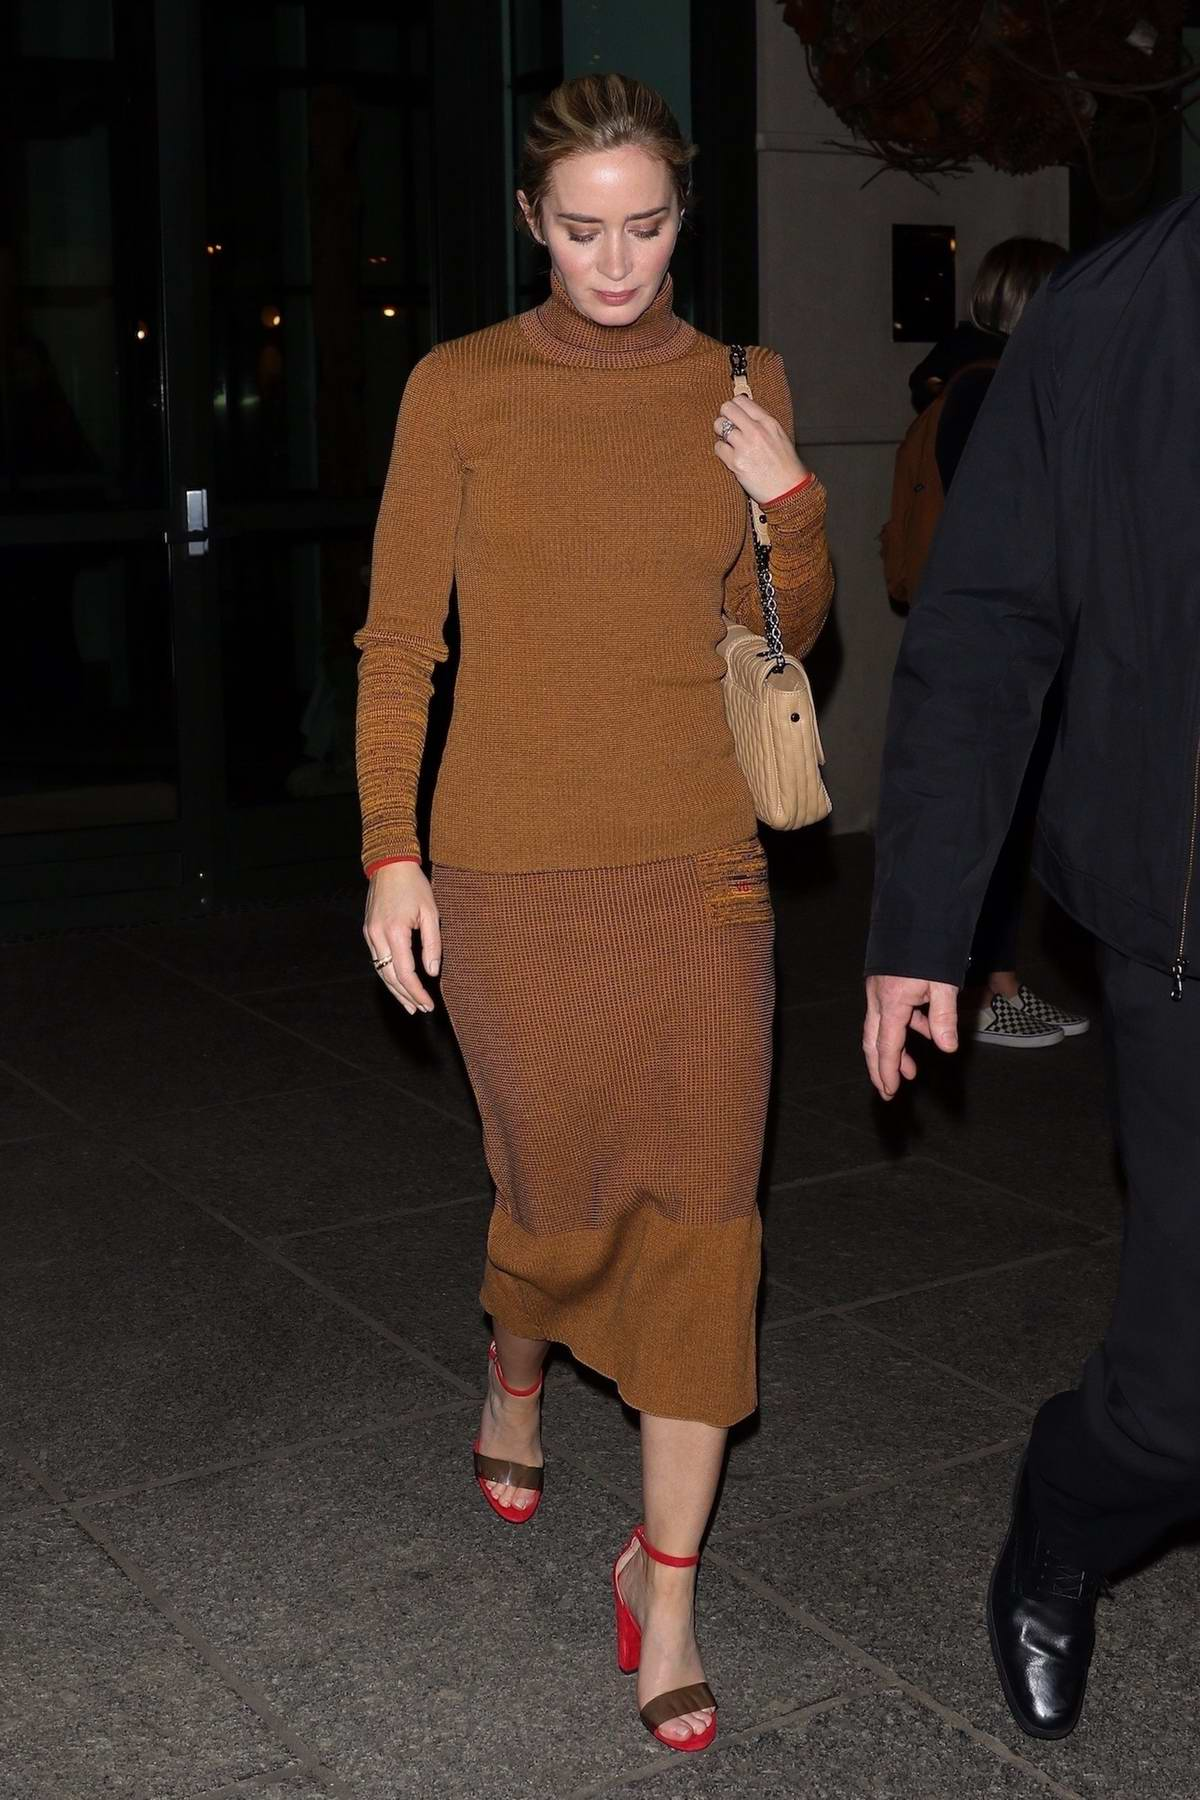 Emily Blunt spotted in a brown dress as she leaves the 'Mary Poppins Returns' screening in New York City